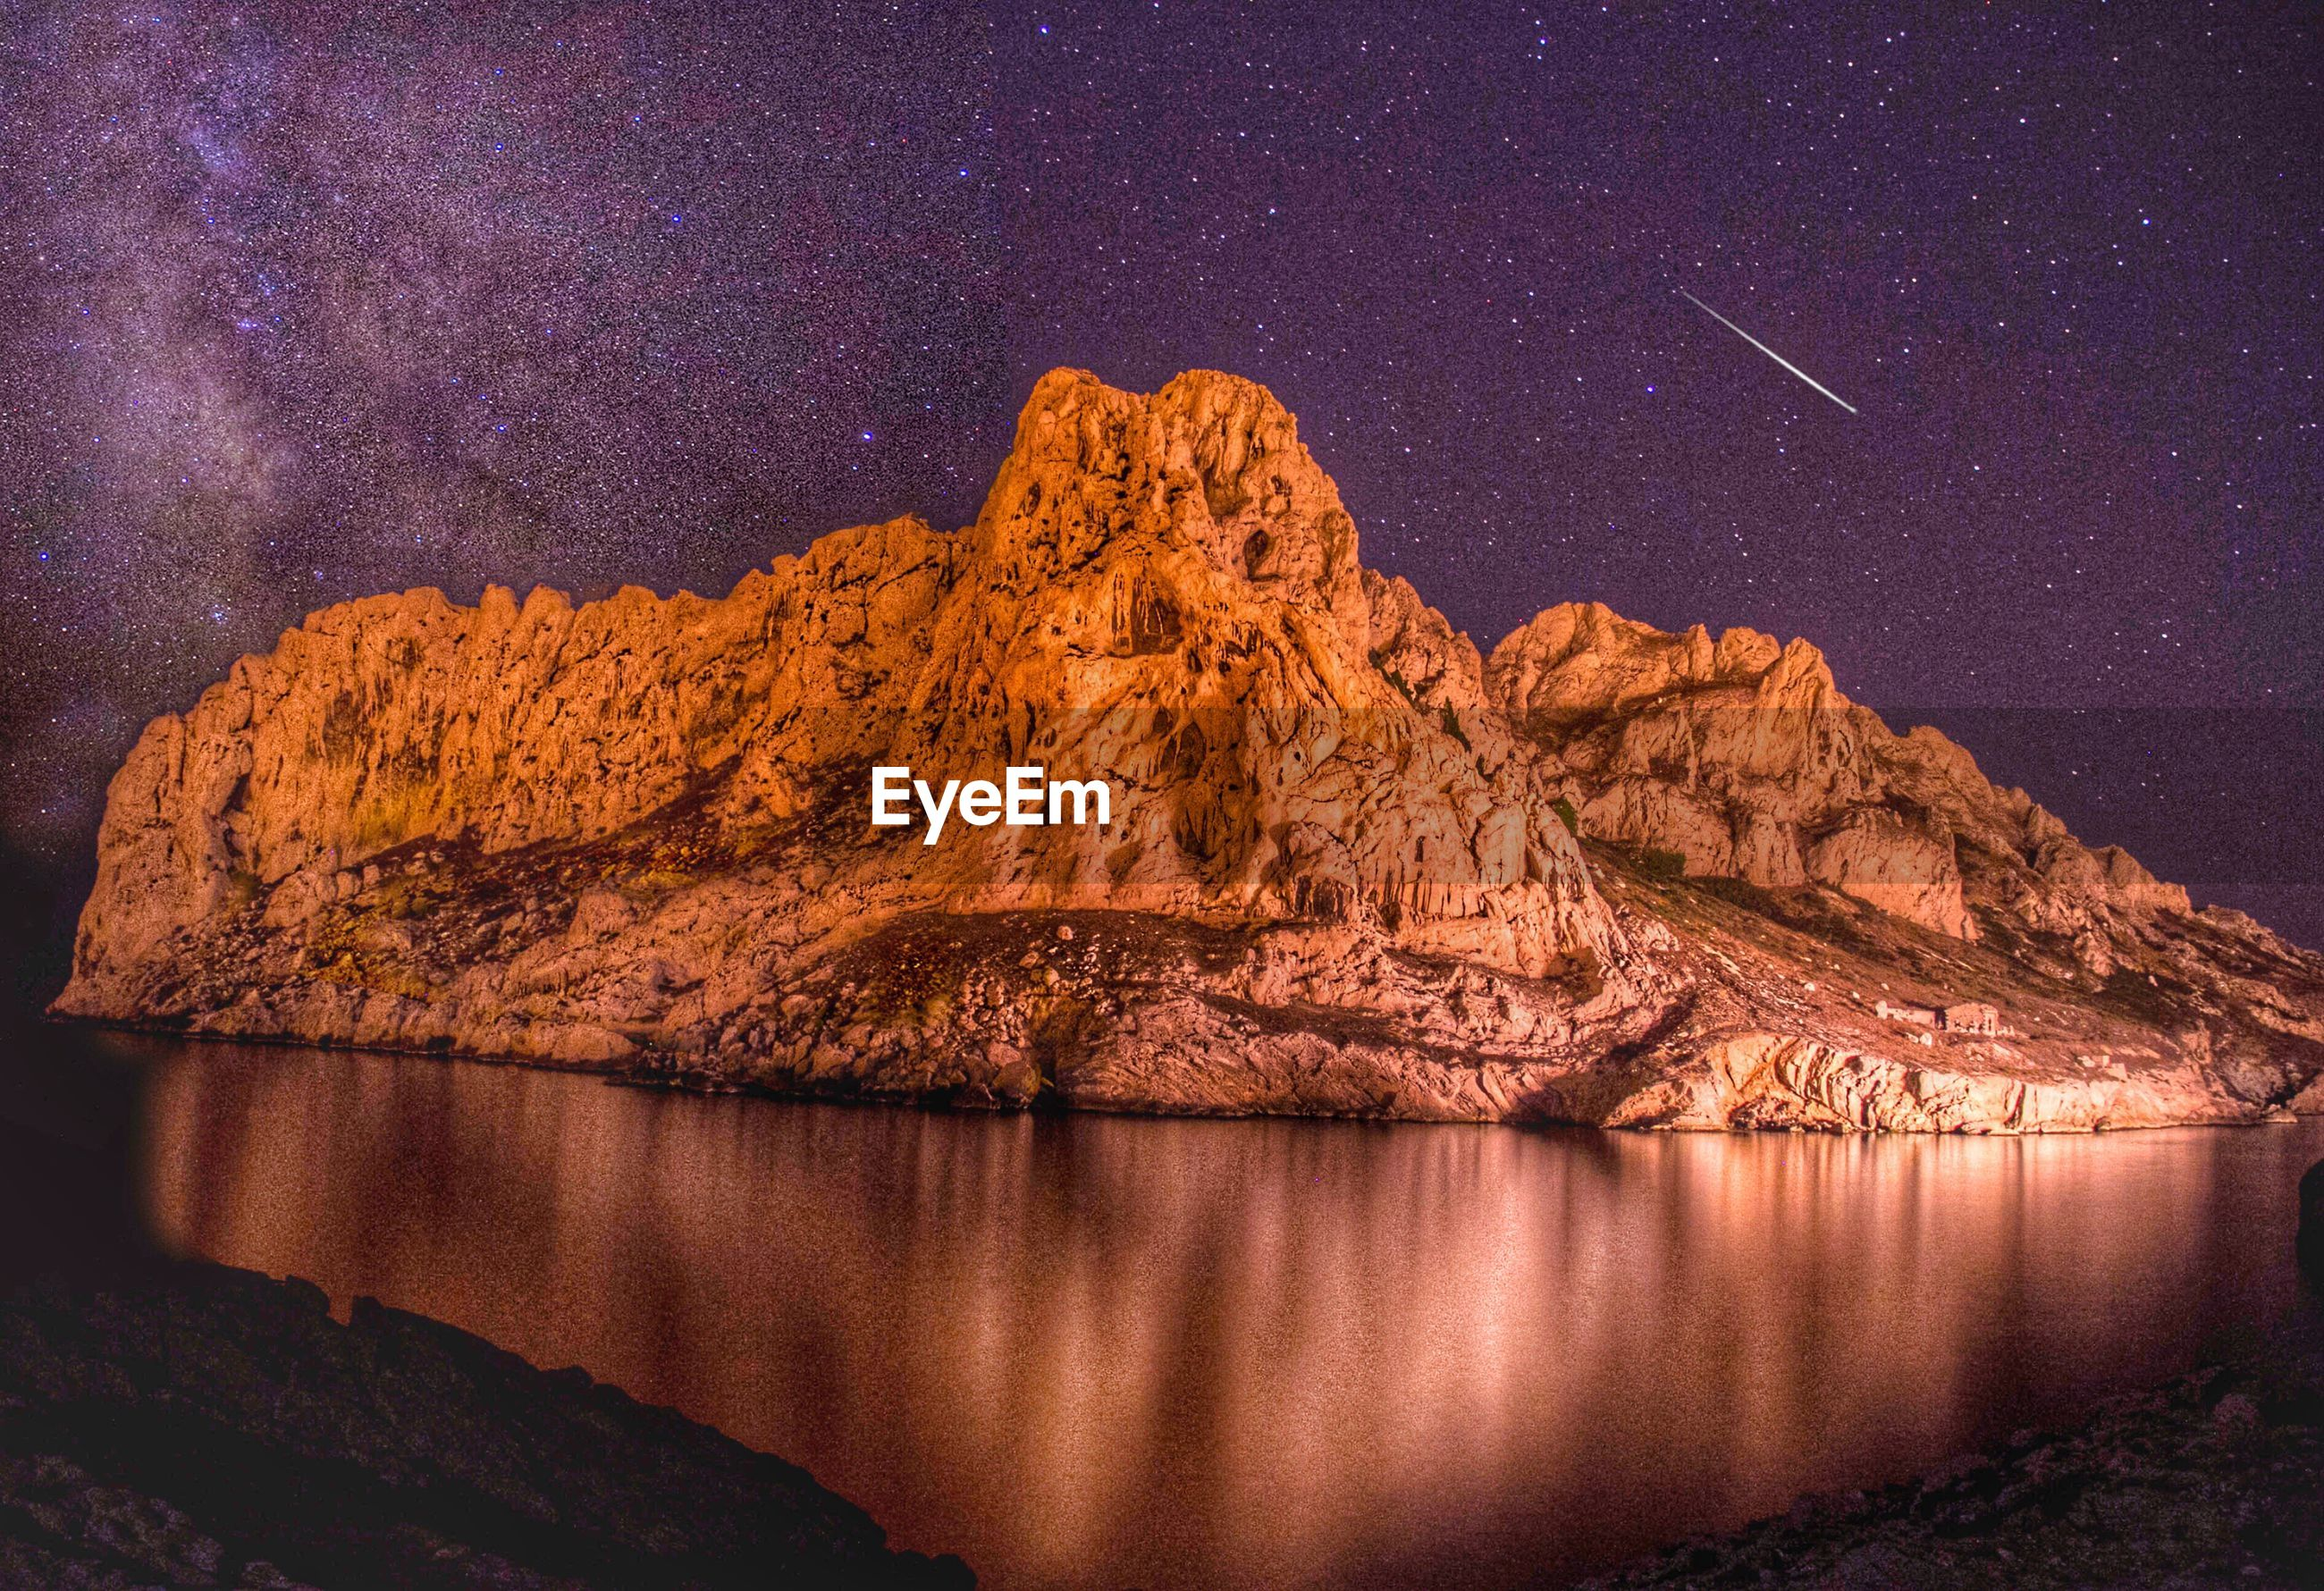 Rocky mountains by river against milky way